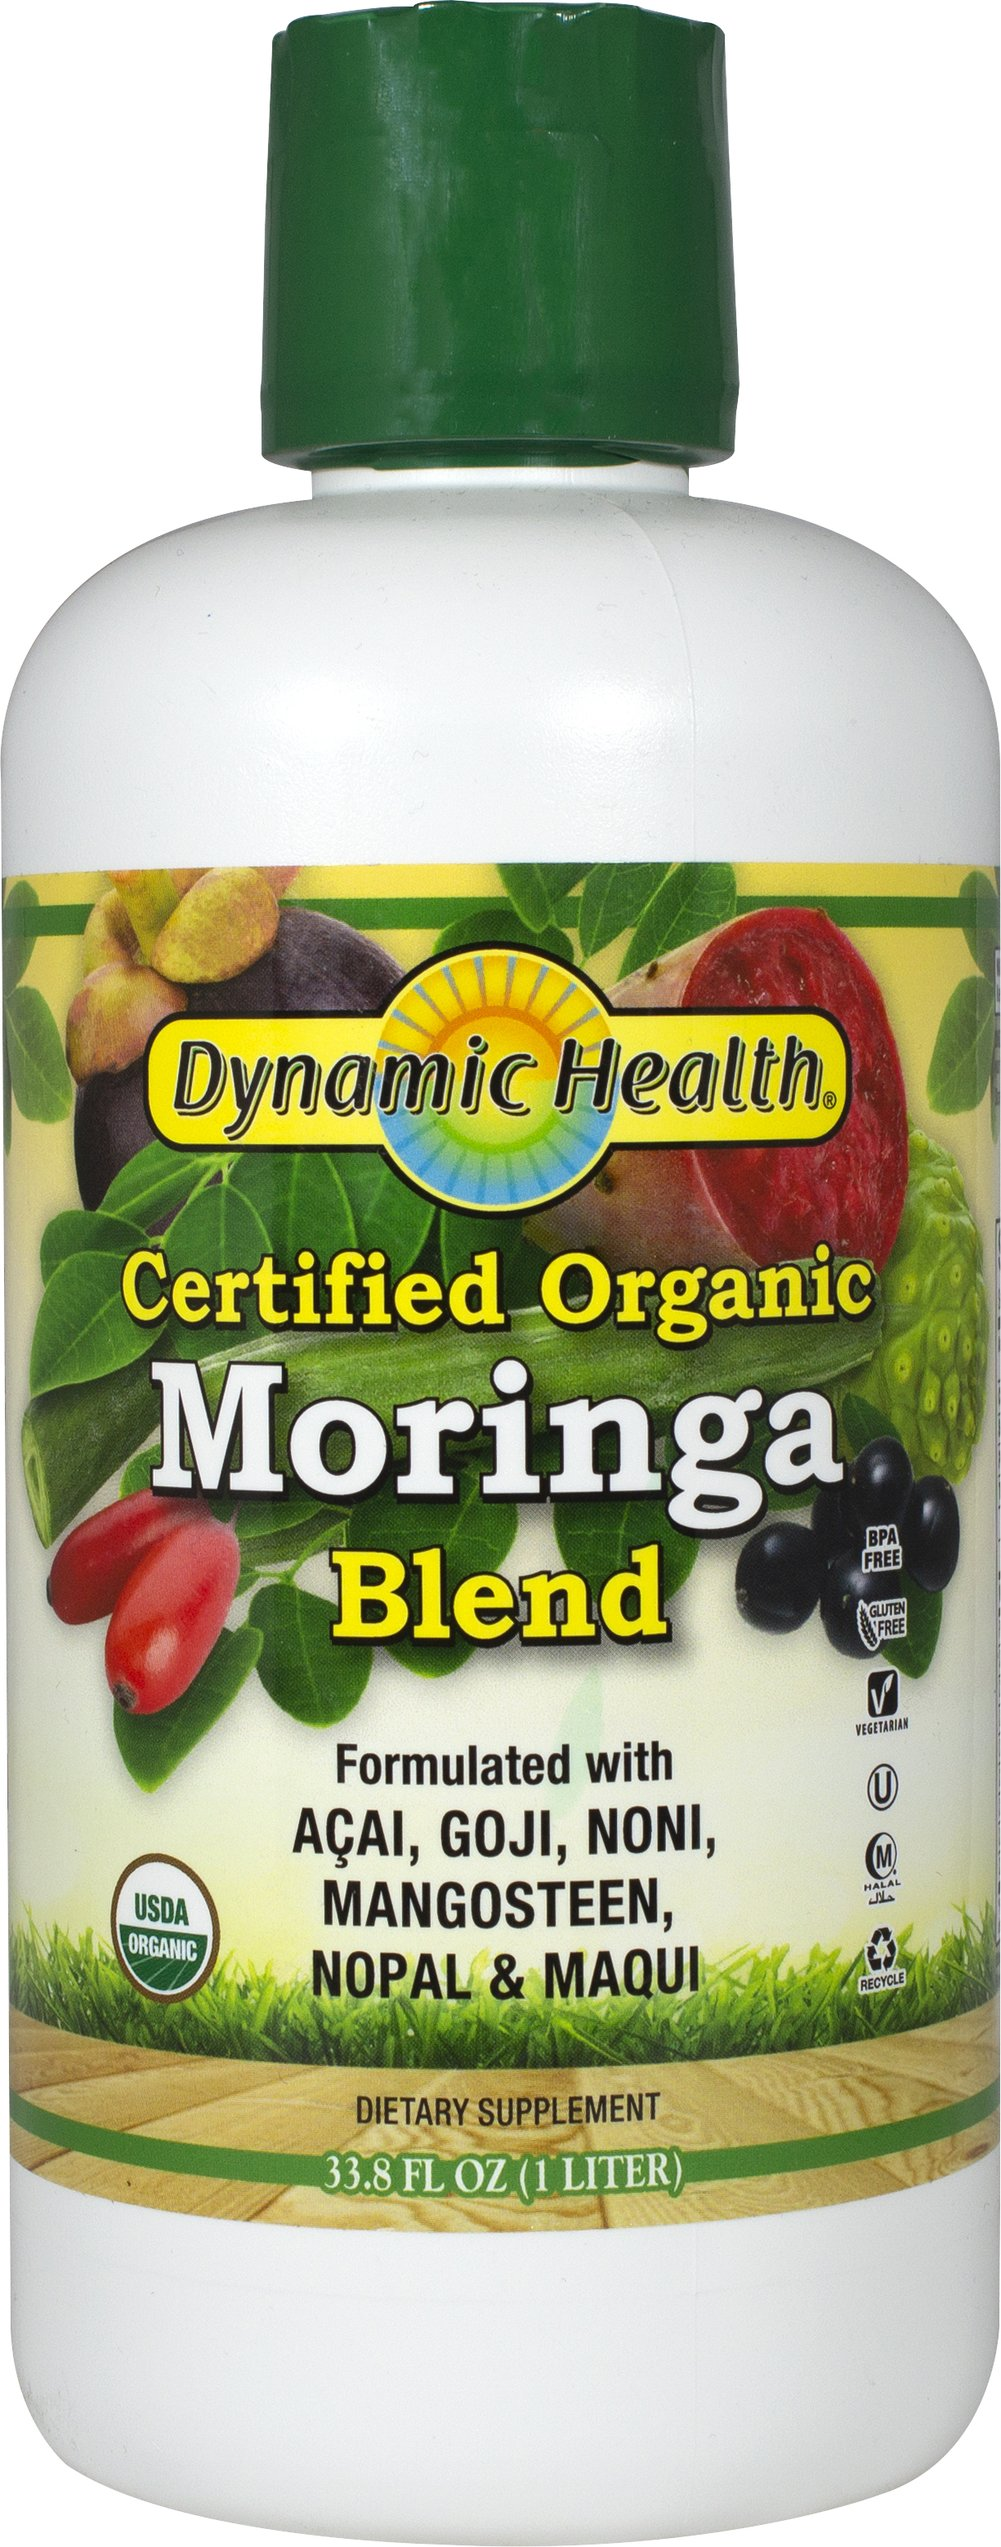 Organic Moringa Juice Blend Thumbnail Alternate Bottle View